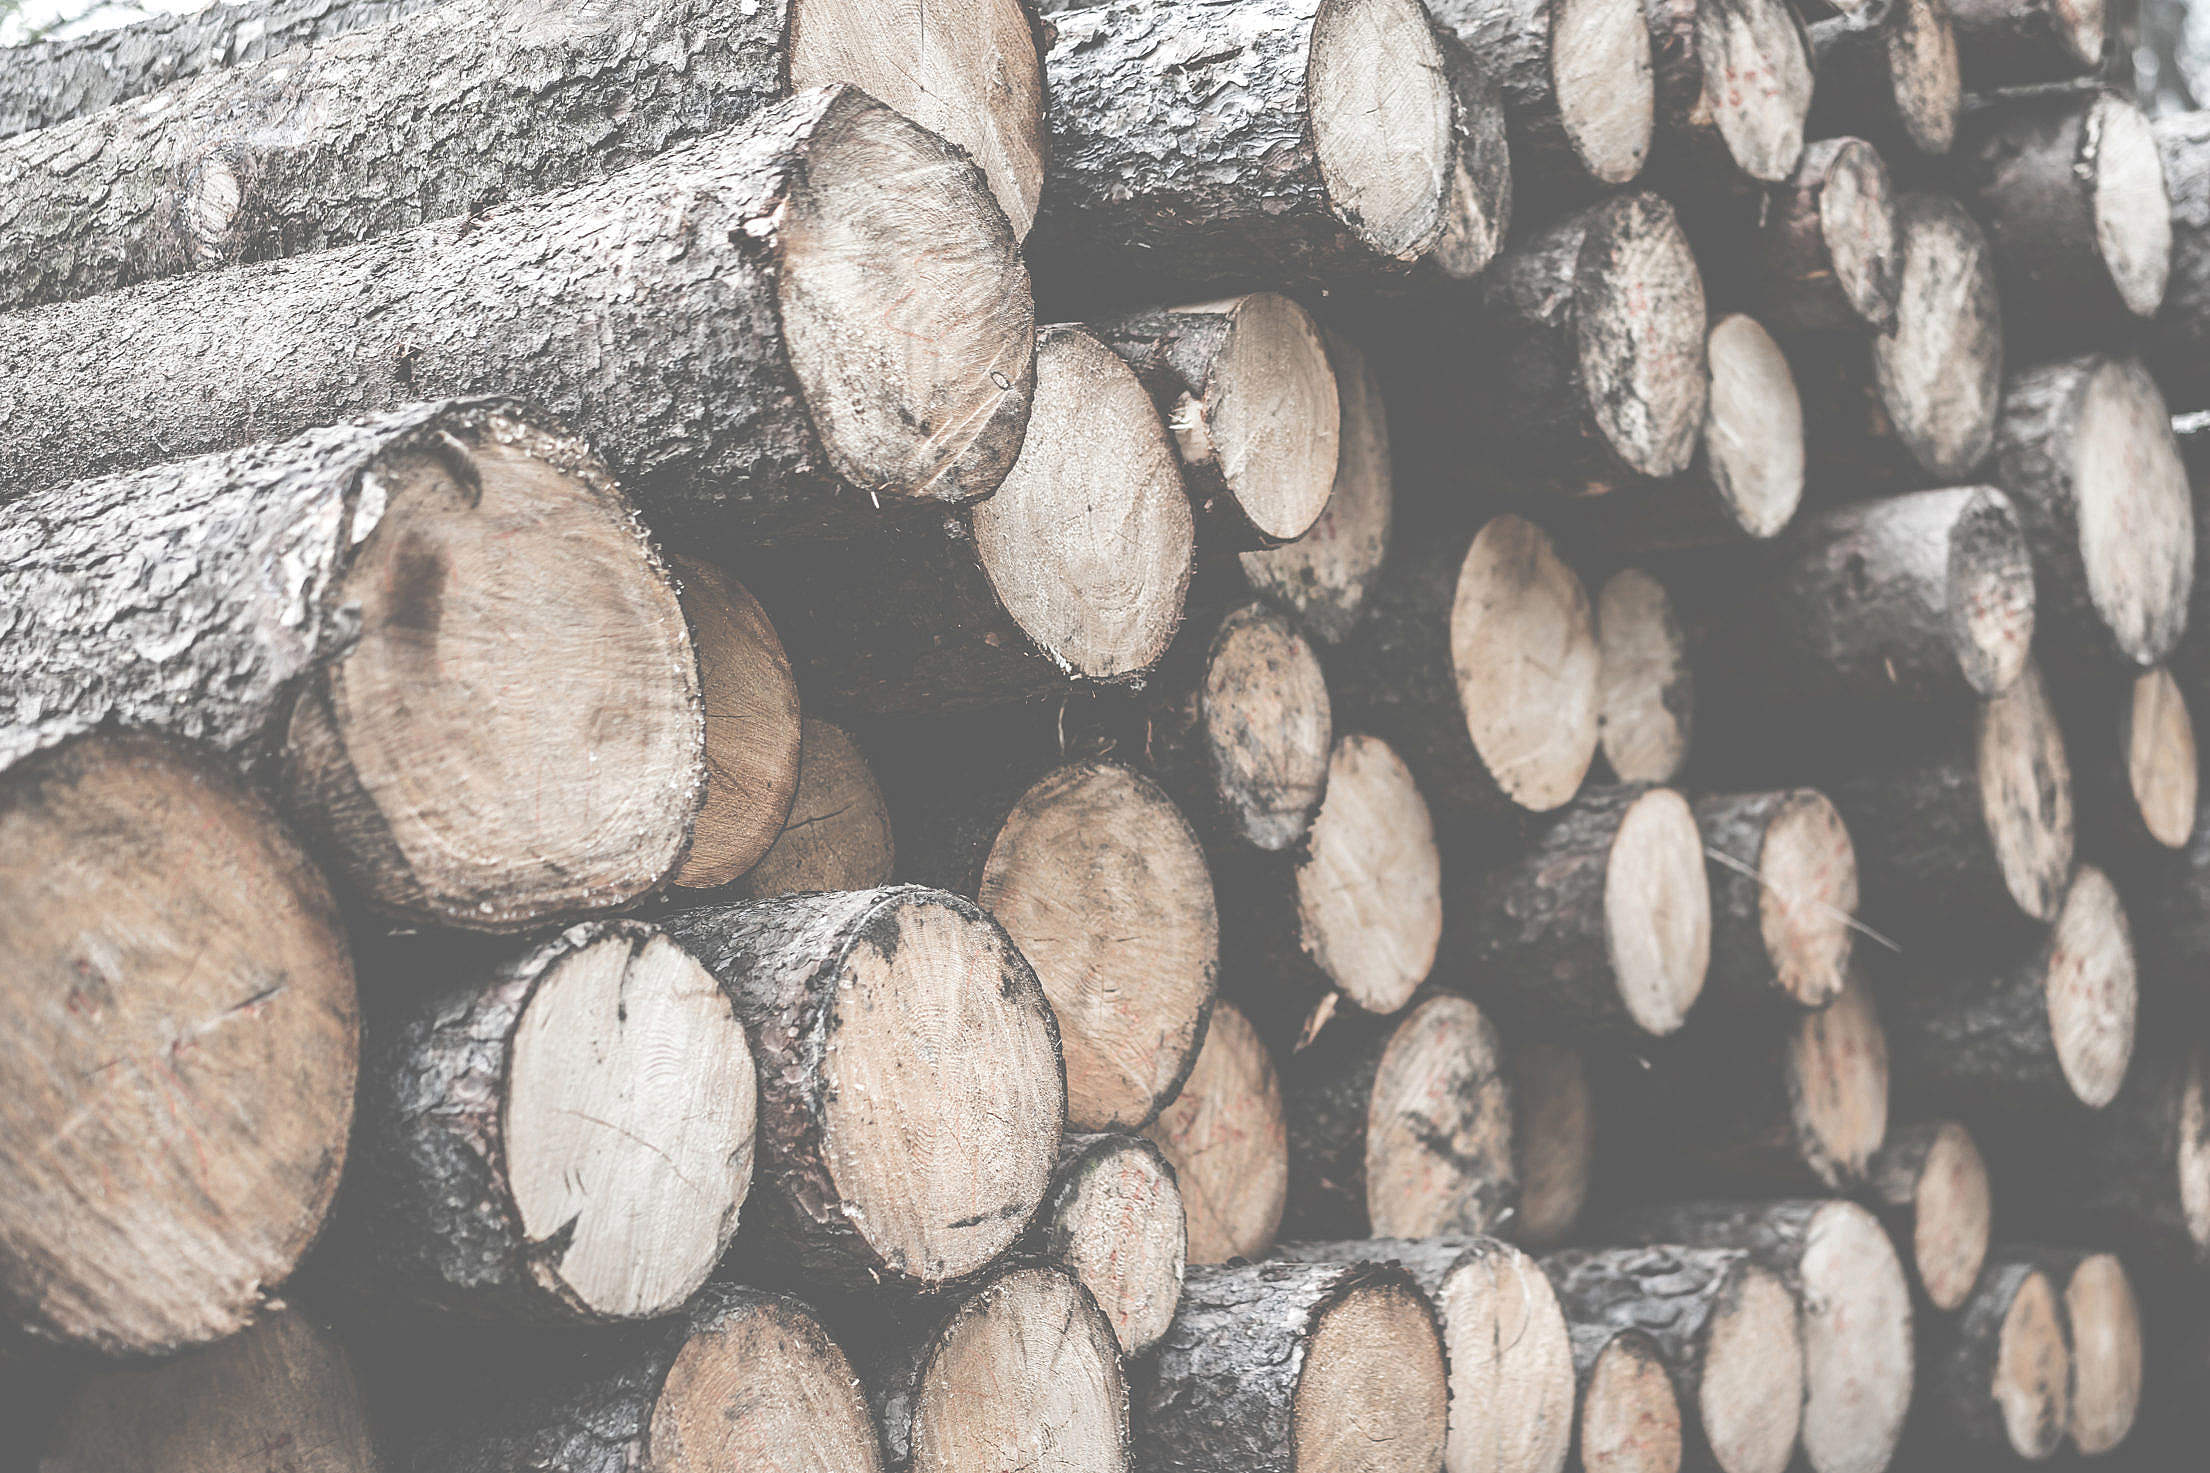 Pile of Felled Wood Logs Desaturated Free Stock Photo